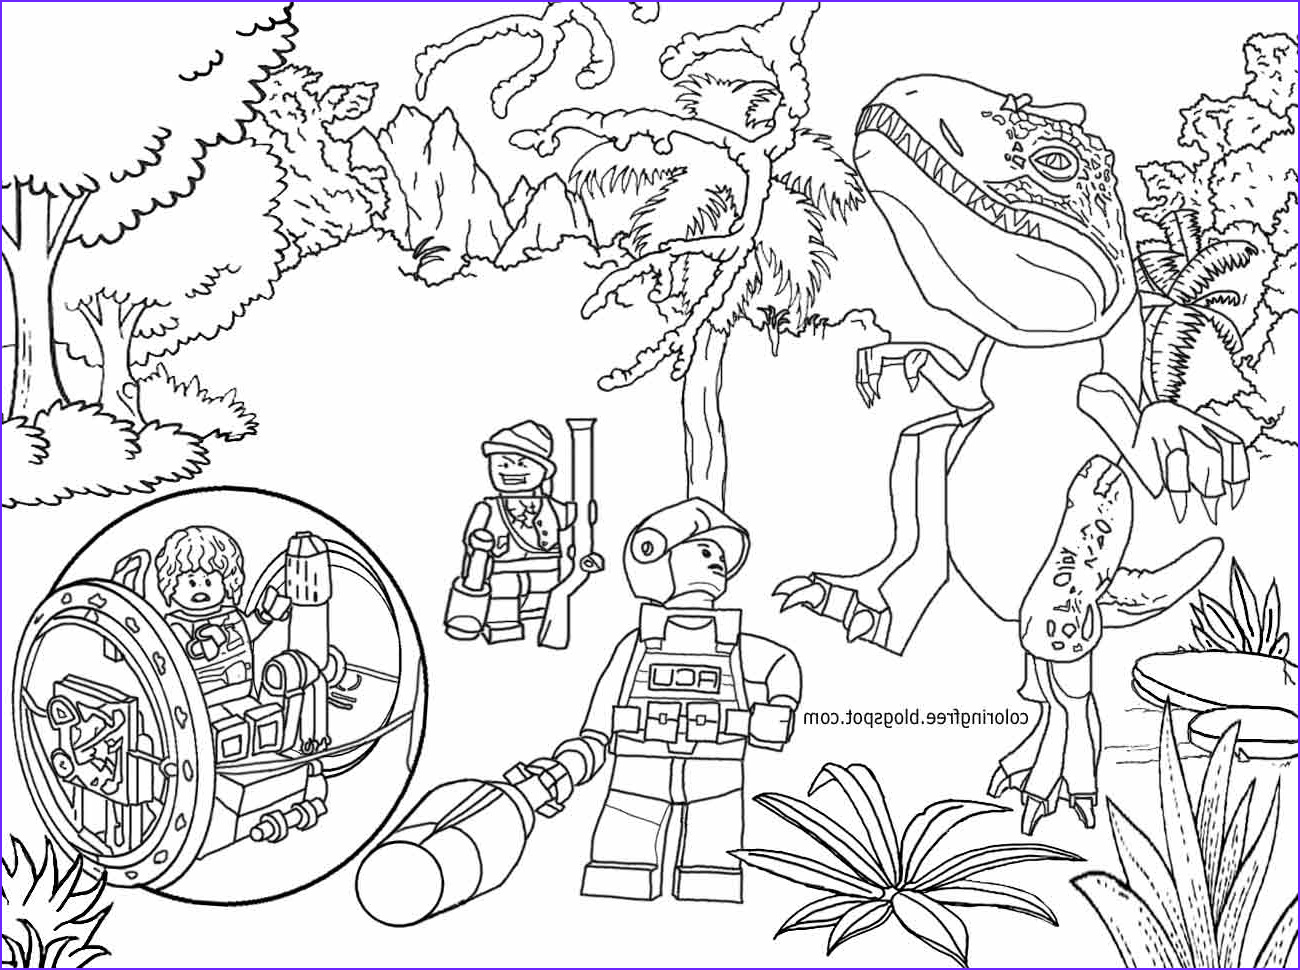 Free Dinosaur Coloring Pages Beautiful Gallery Free Coloring Pages Printable to Color Kids